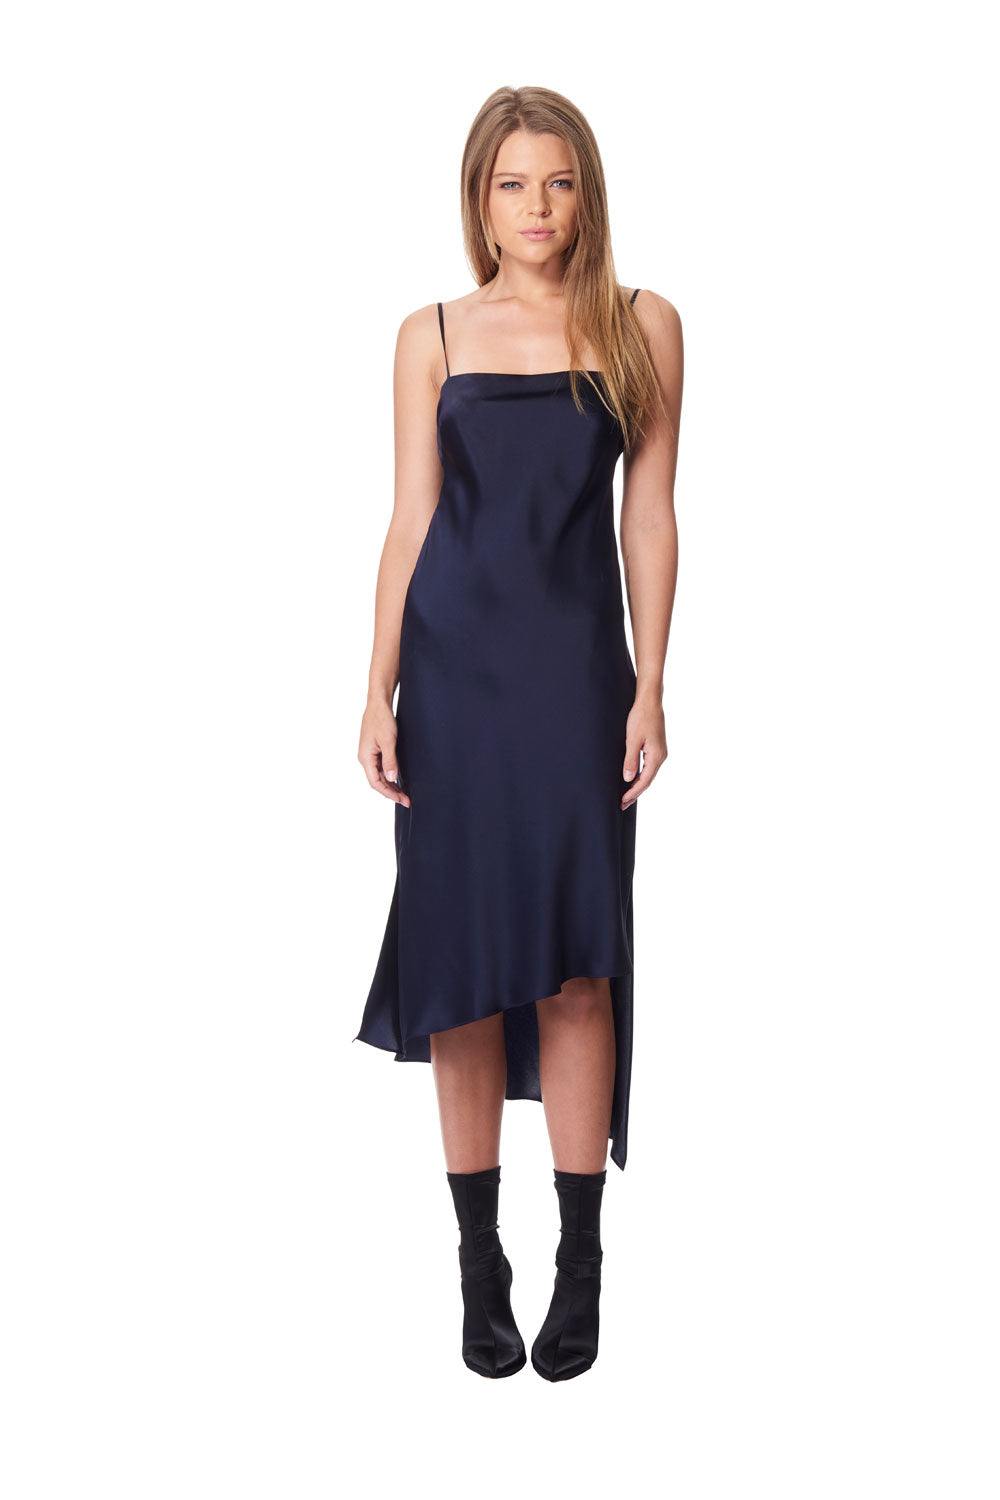 Mimi slip dress - Navy